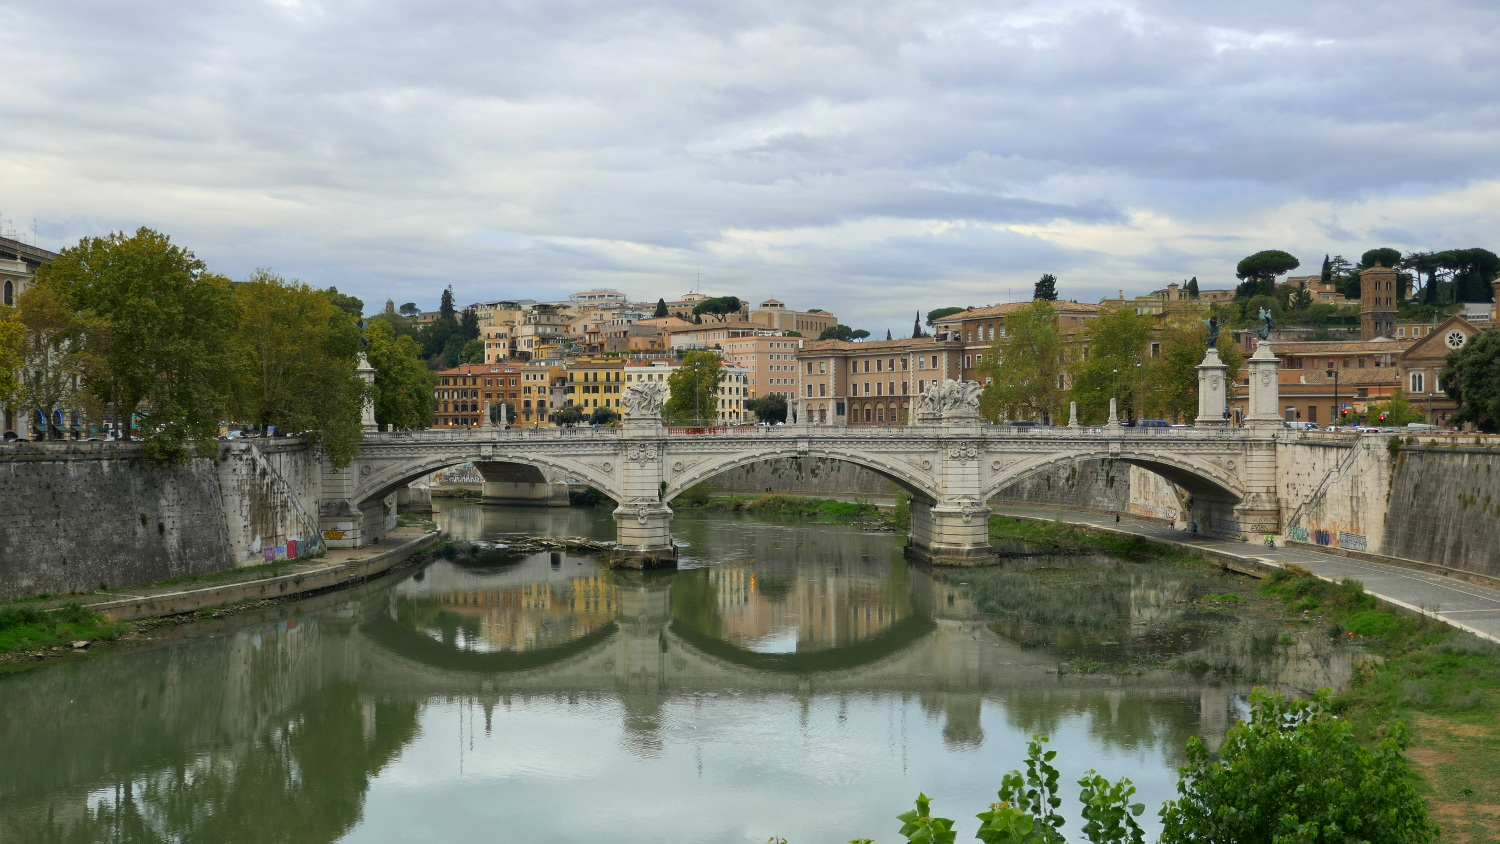 Ponte Vittorio Emanuele II and the River Tiber, Rome, Italy